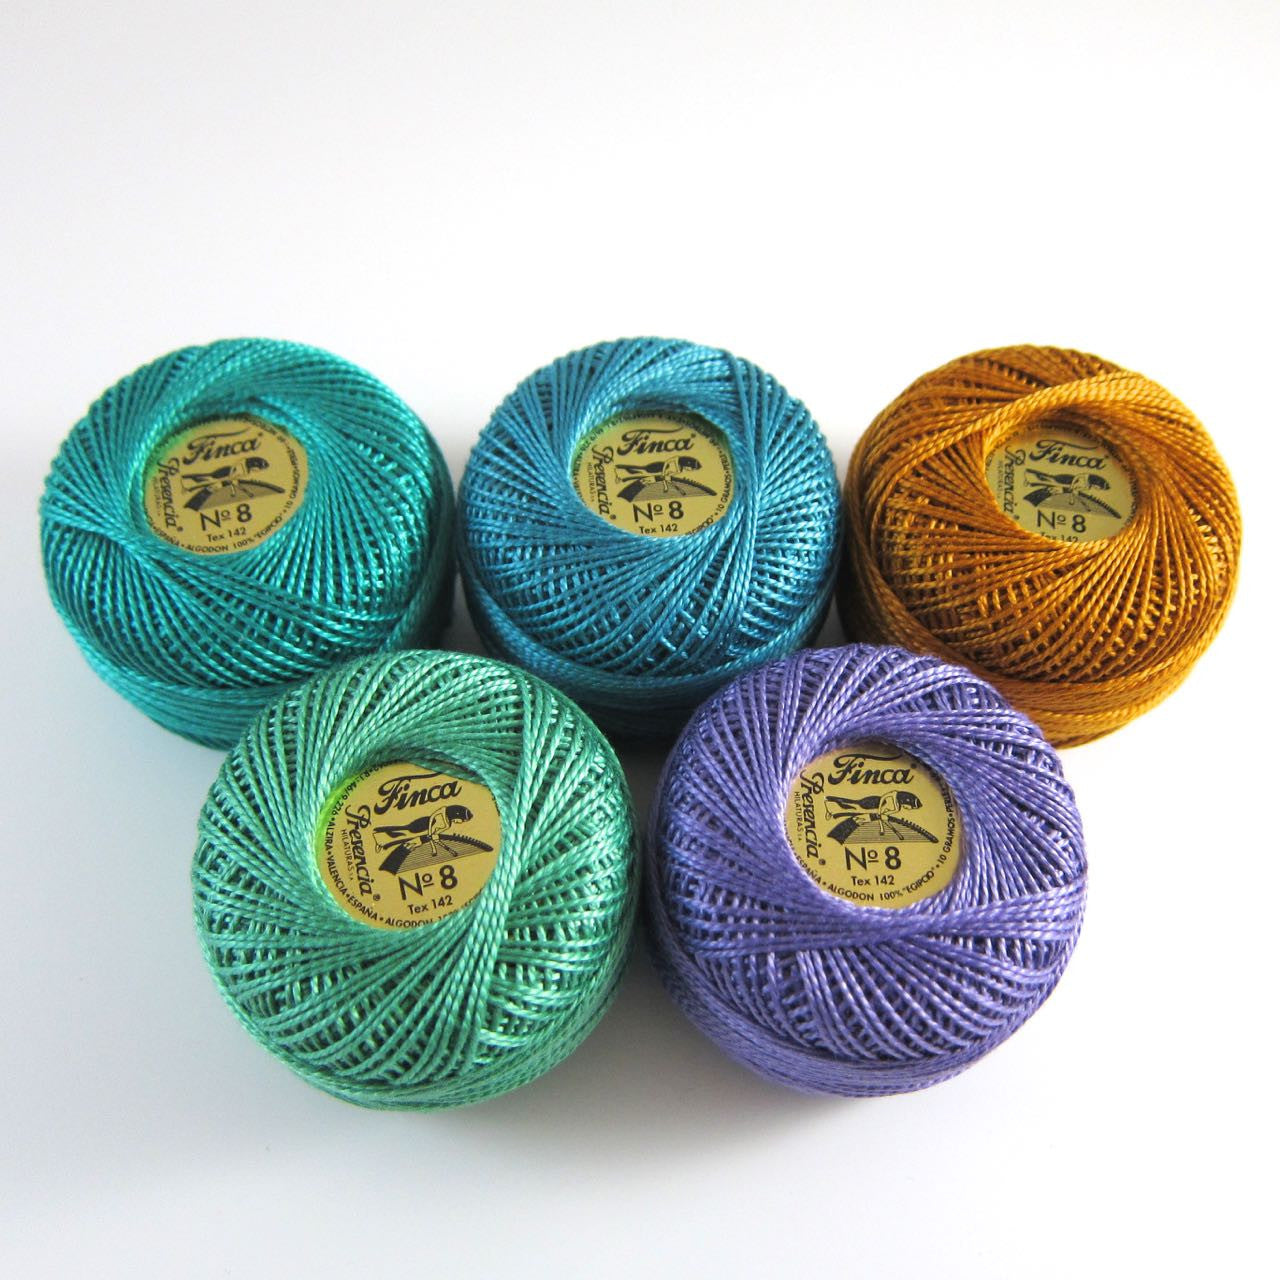 Peacock Pearl Cotton Thread Collection Perle Cotton - Snuggly Monkey